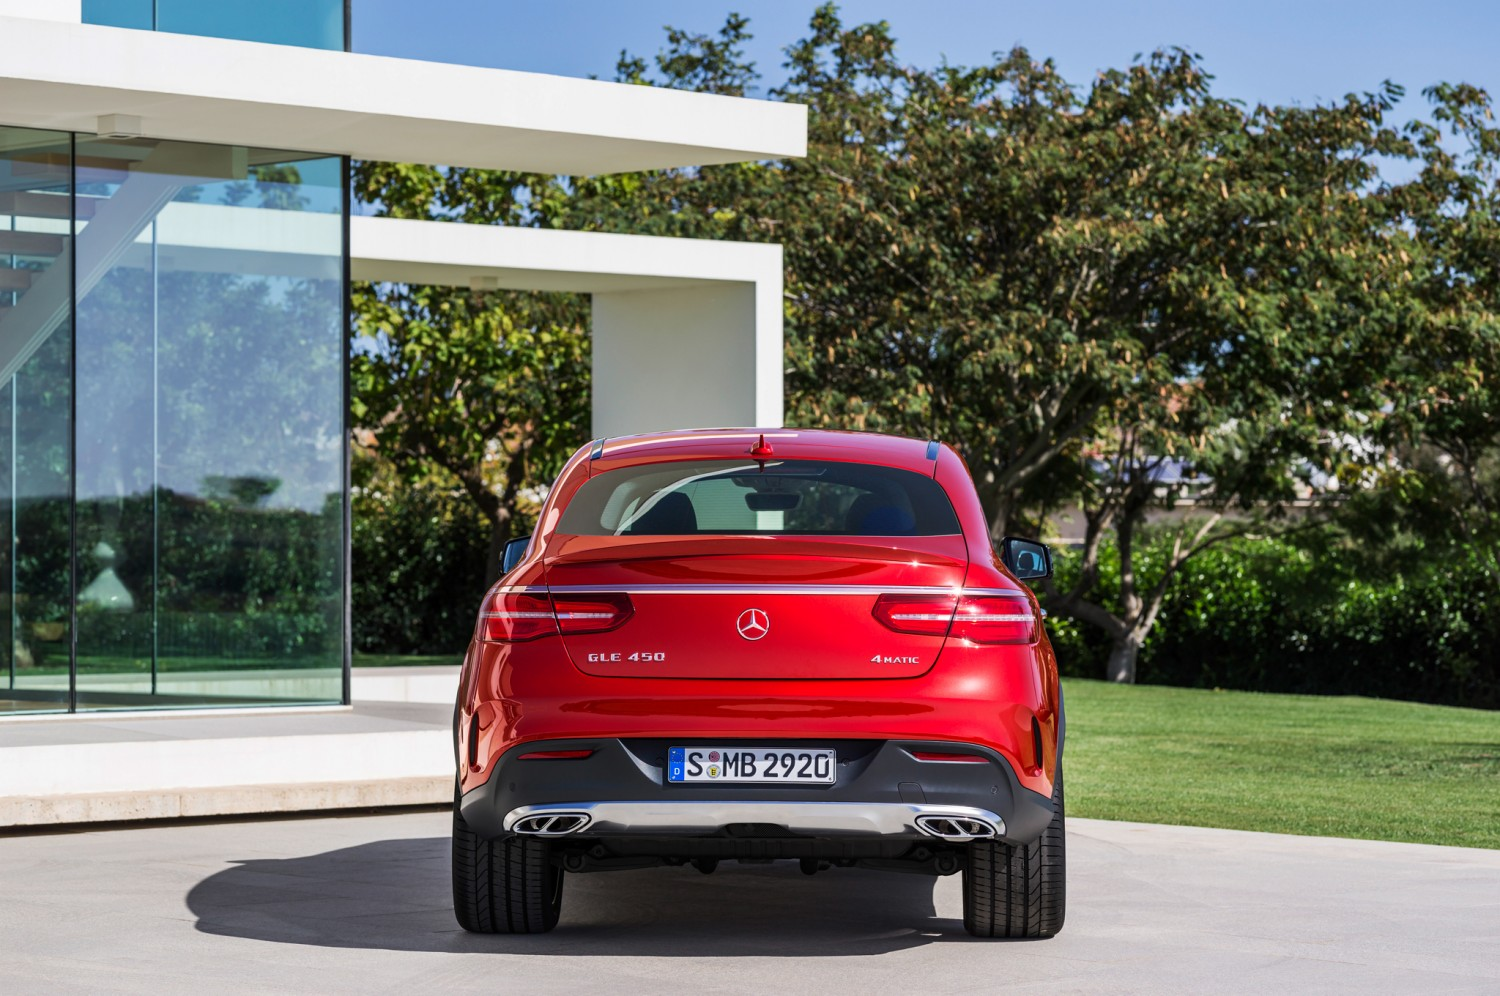 2016-mercedes-benz-gle-450-amg-4matic-coupe-rear-end